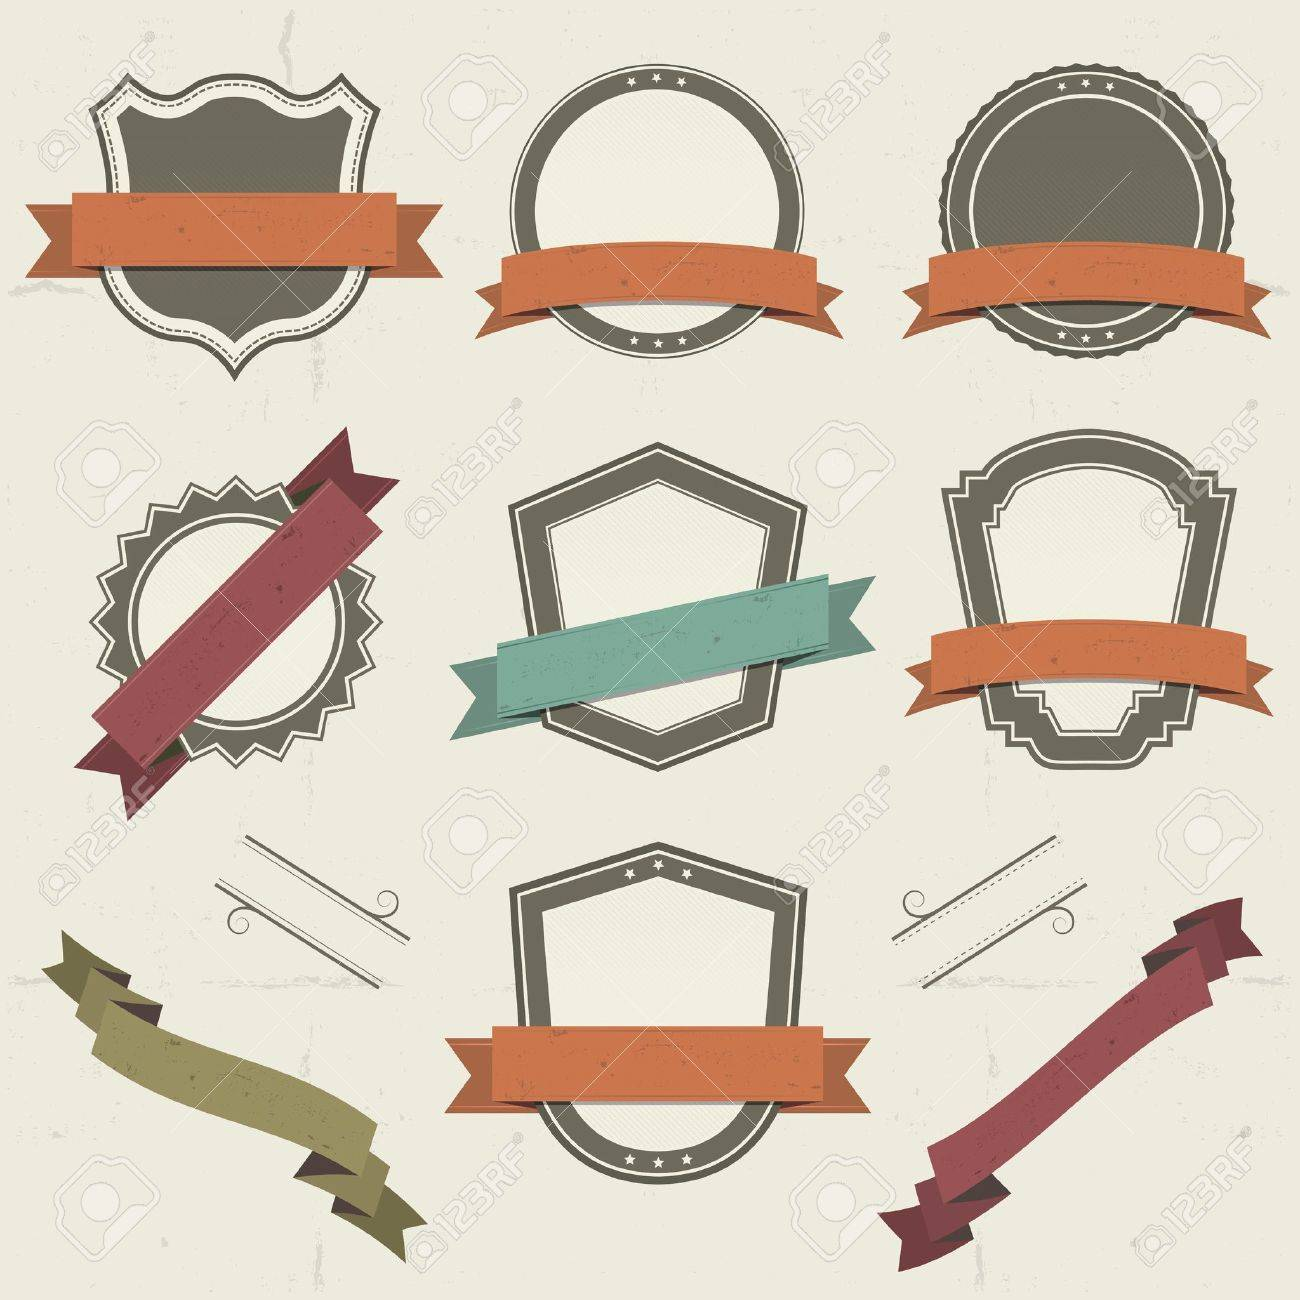 Illustration of a collection of vintage shields and other badges with banners,  labels, ribbons for holidays and celebrations Stock Vector - 12484536